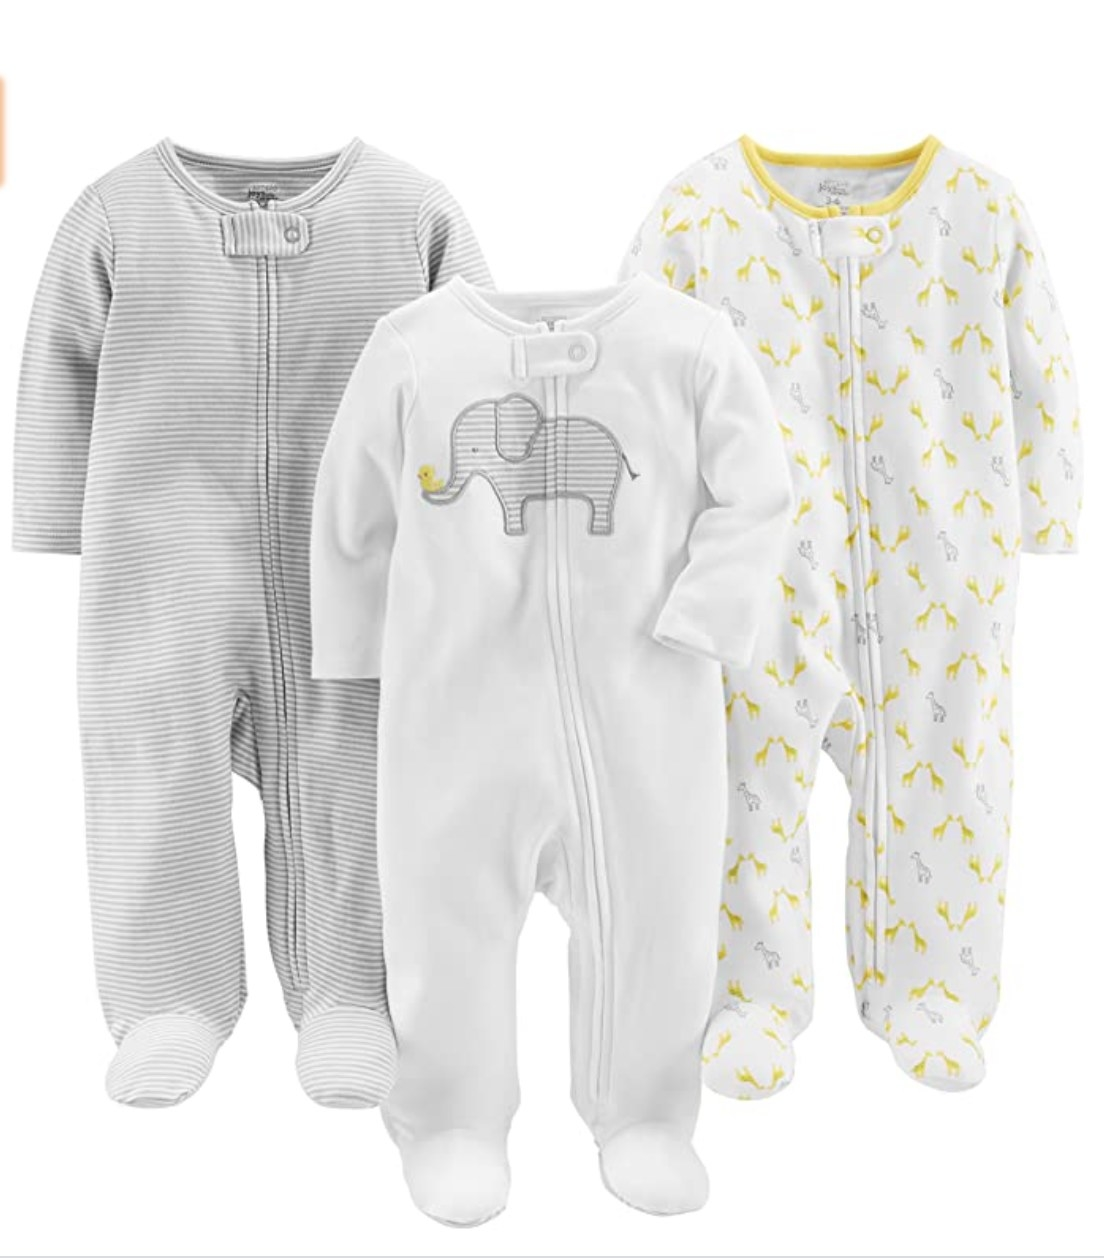 Three gender neutral baby onesies with zippers